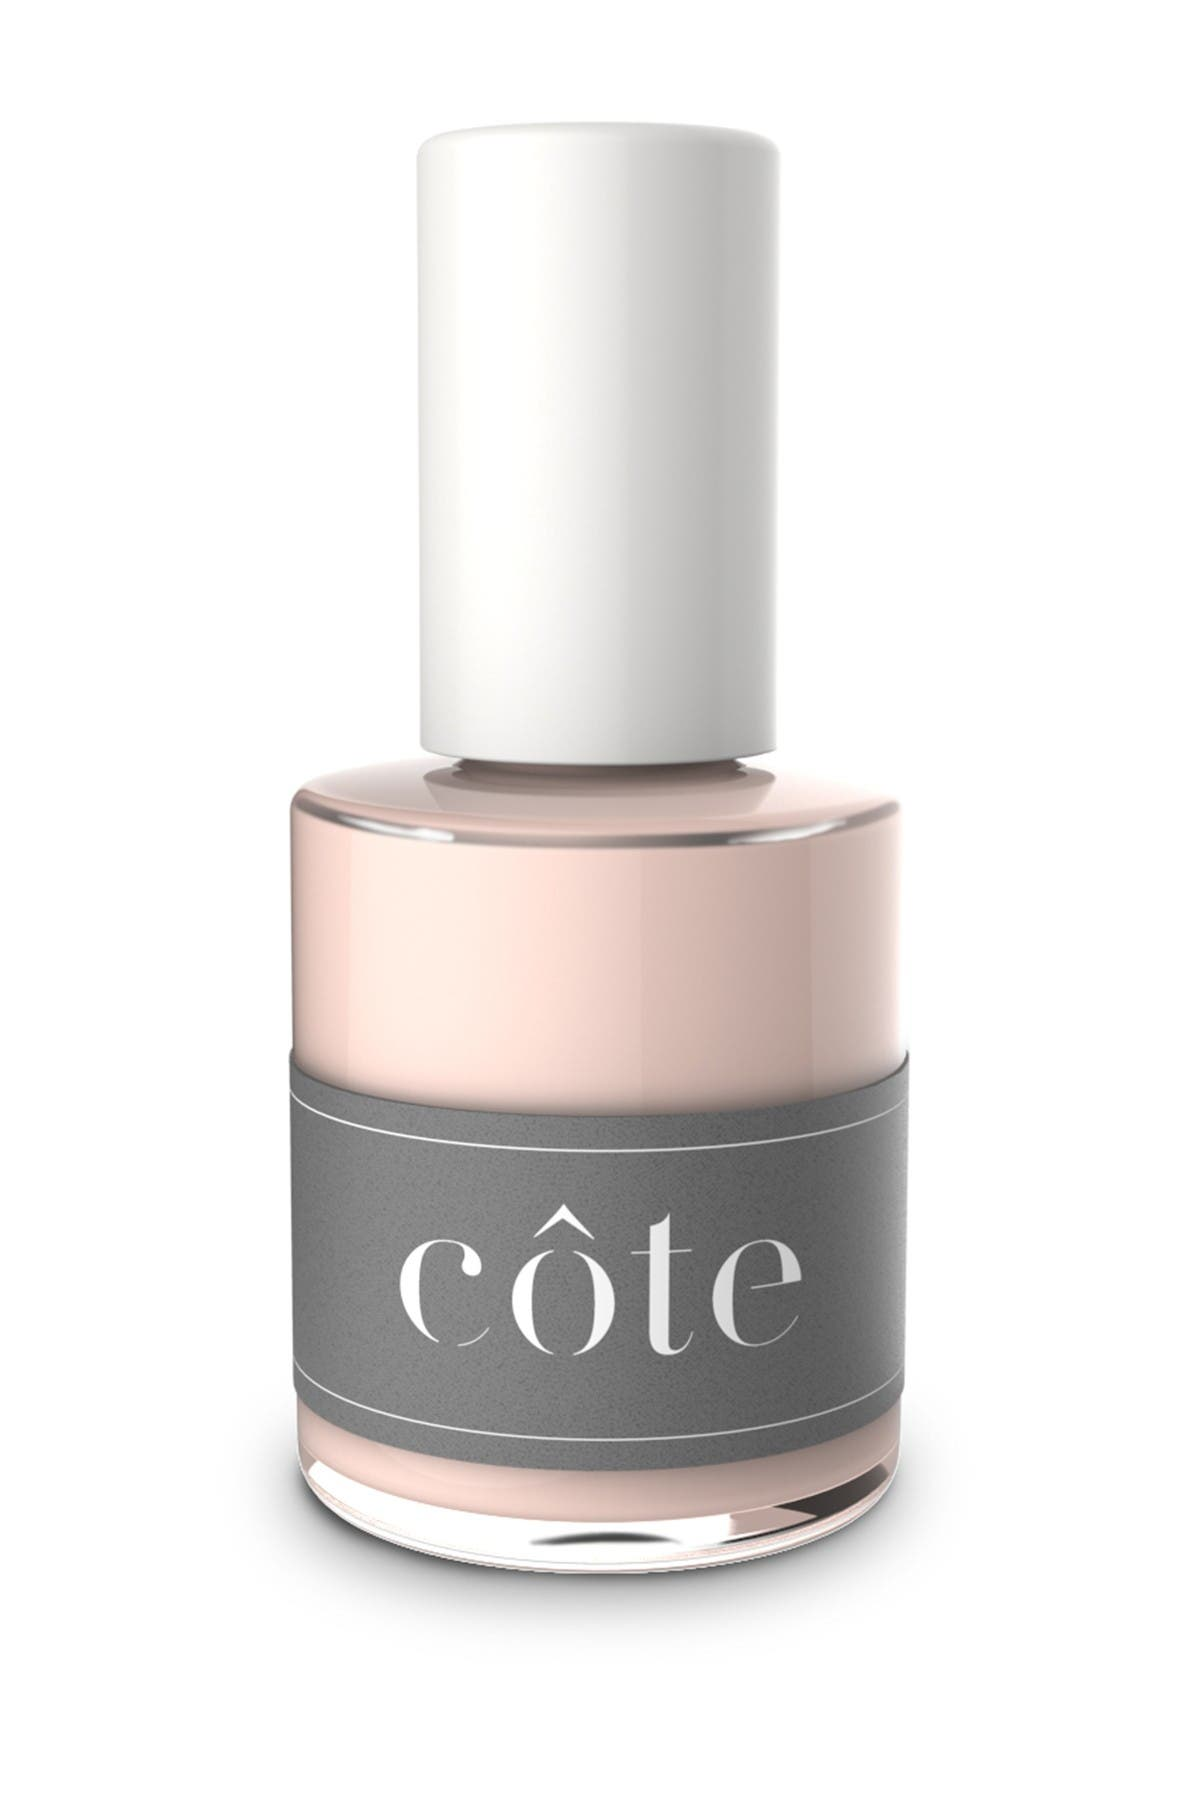 Image of Cote No. 4. Sheer Beige Apricot Nail Color